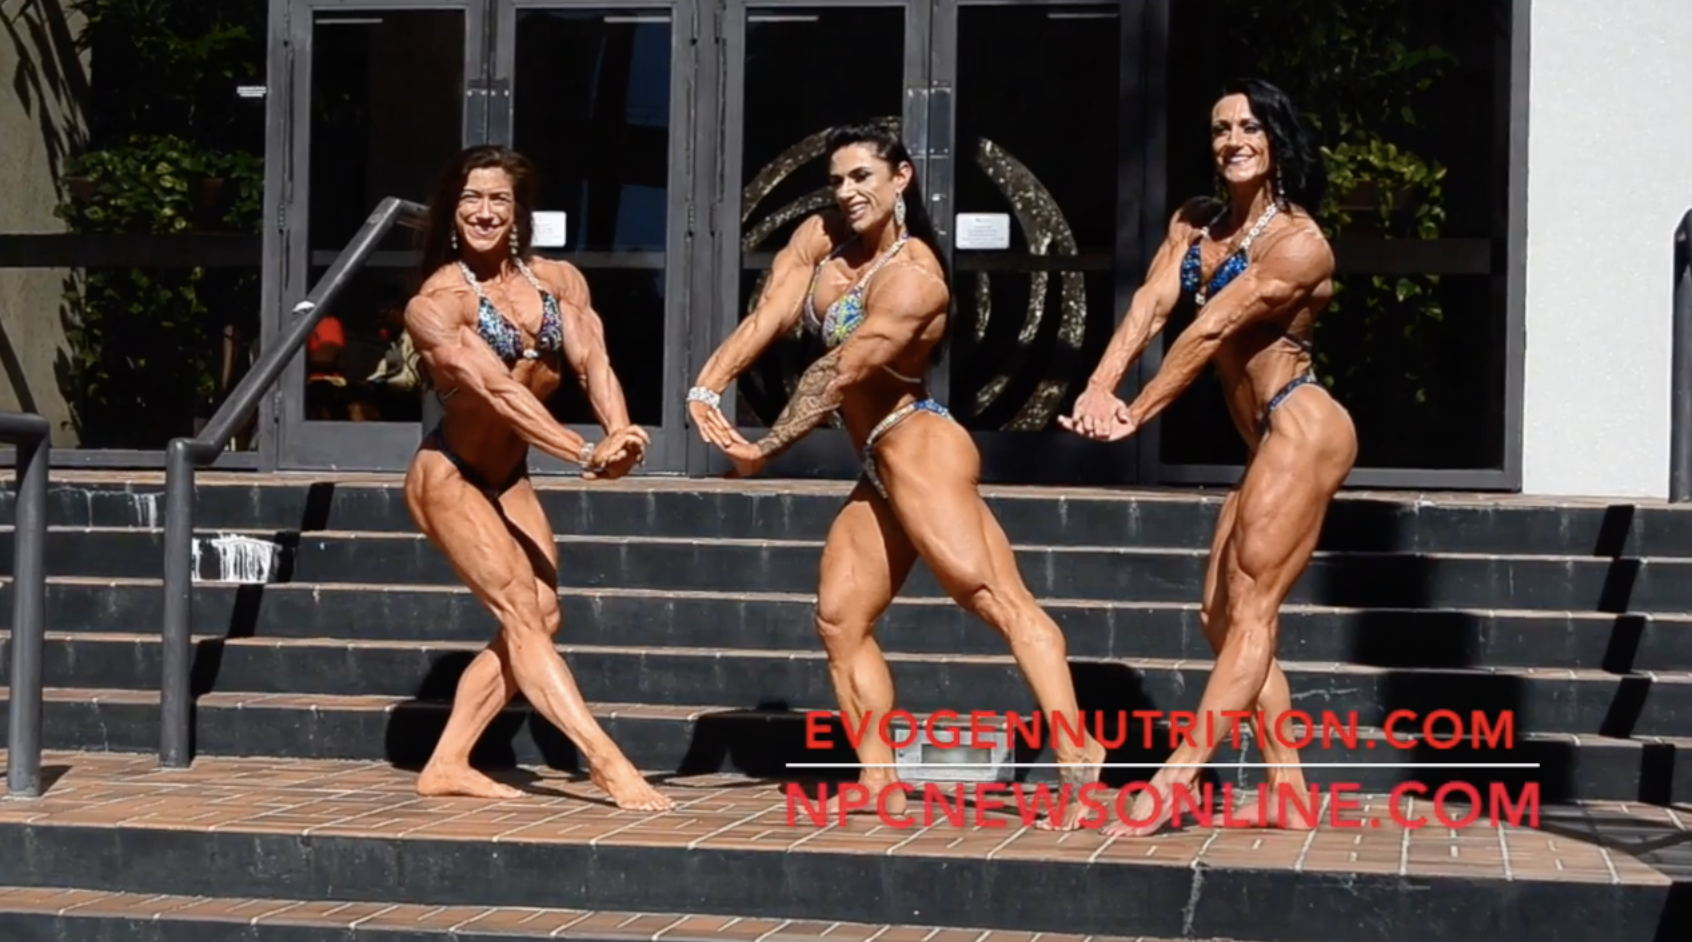 2017 J.M. Manion Sunday Shoot: NPC Nationals Women's Physique Winners Video